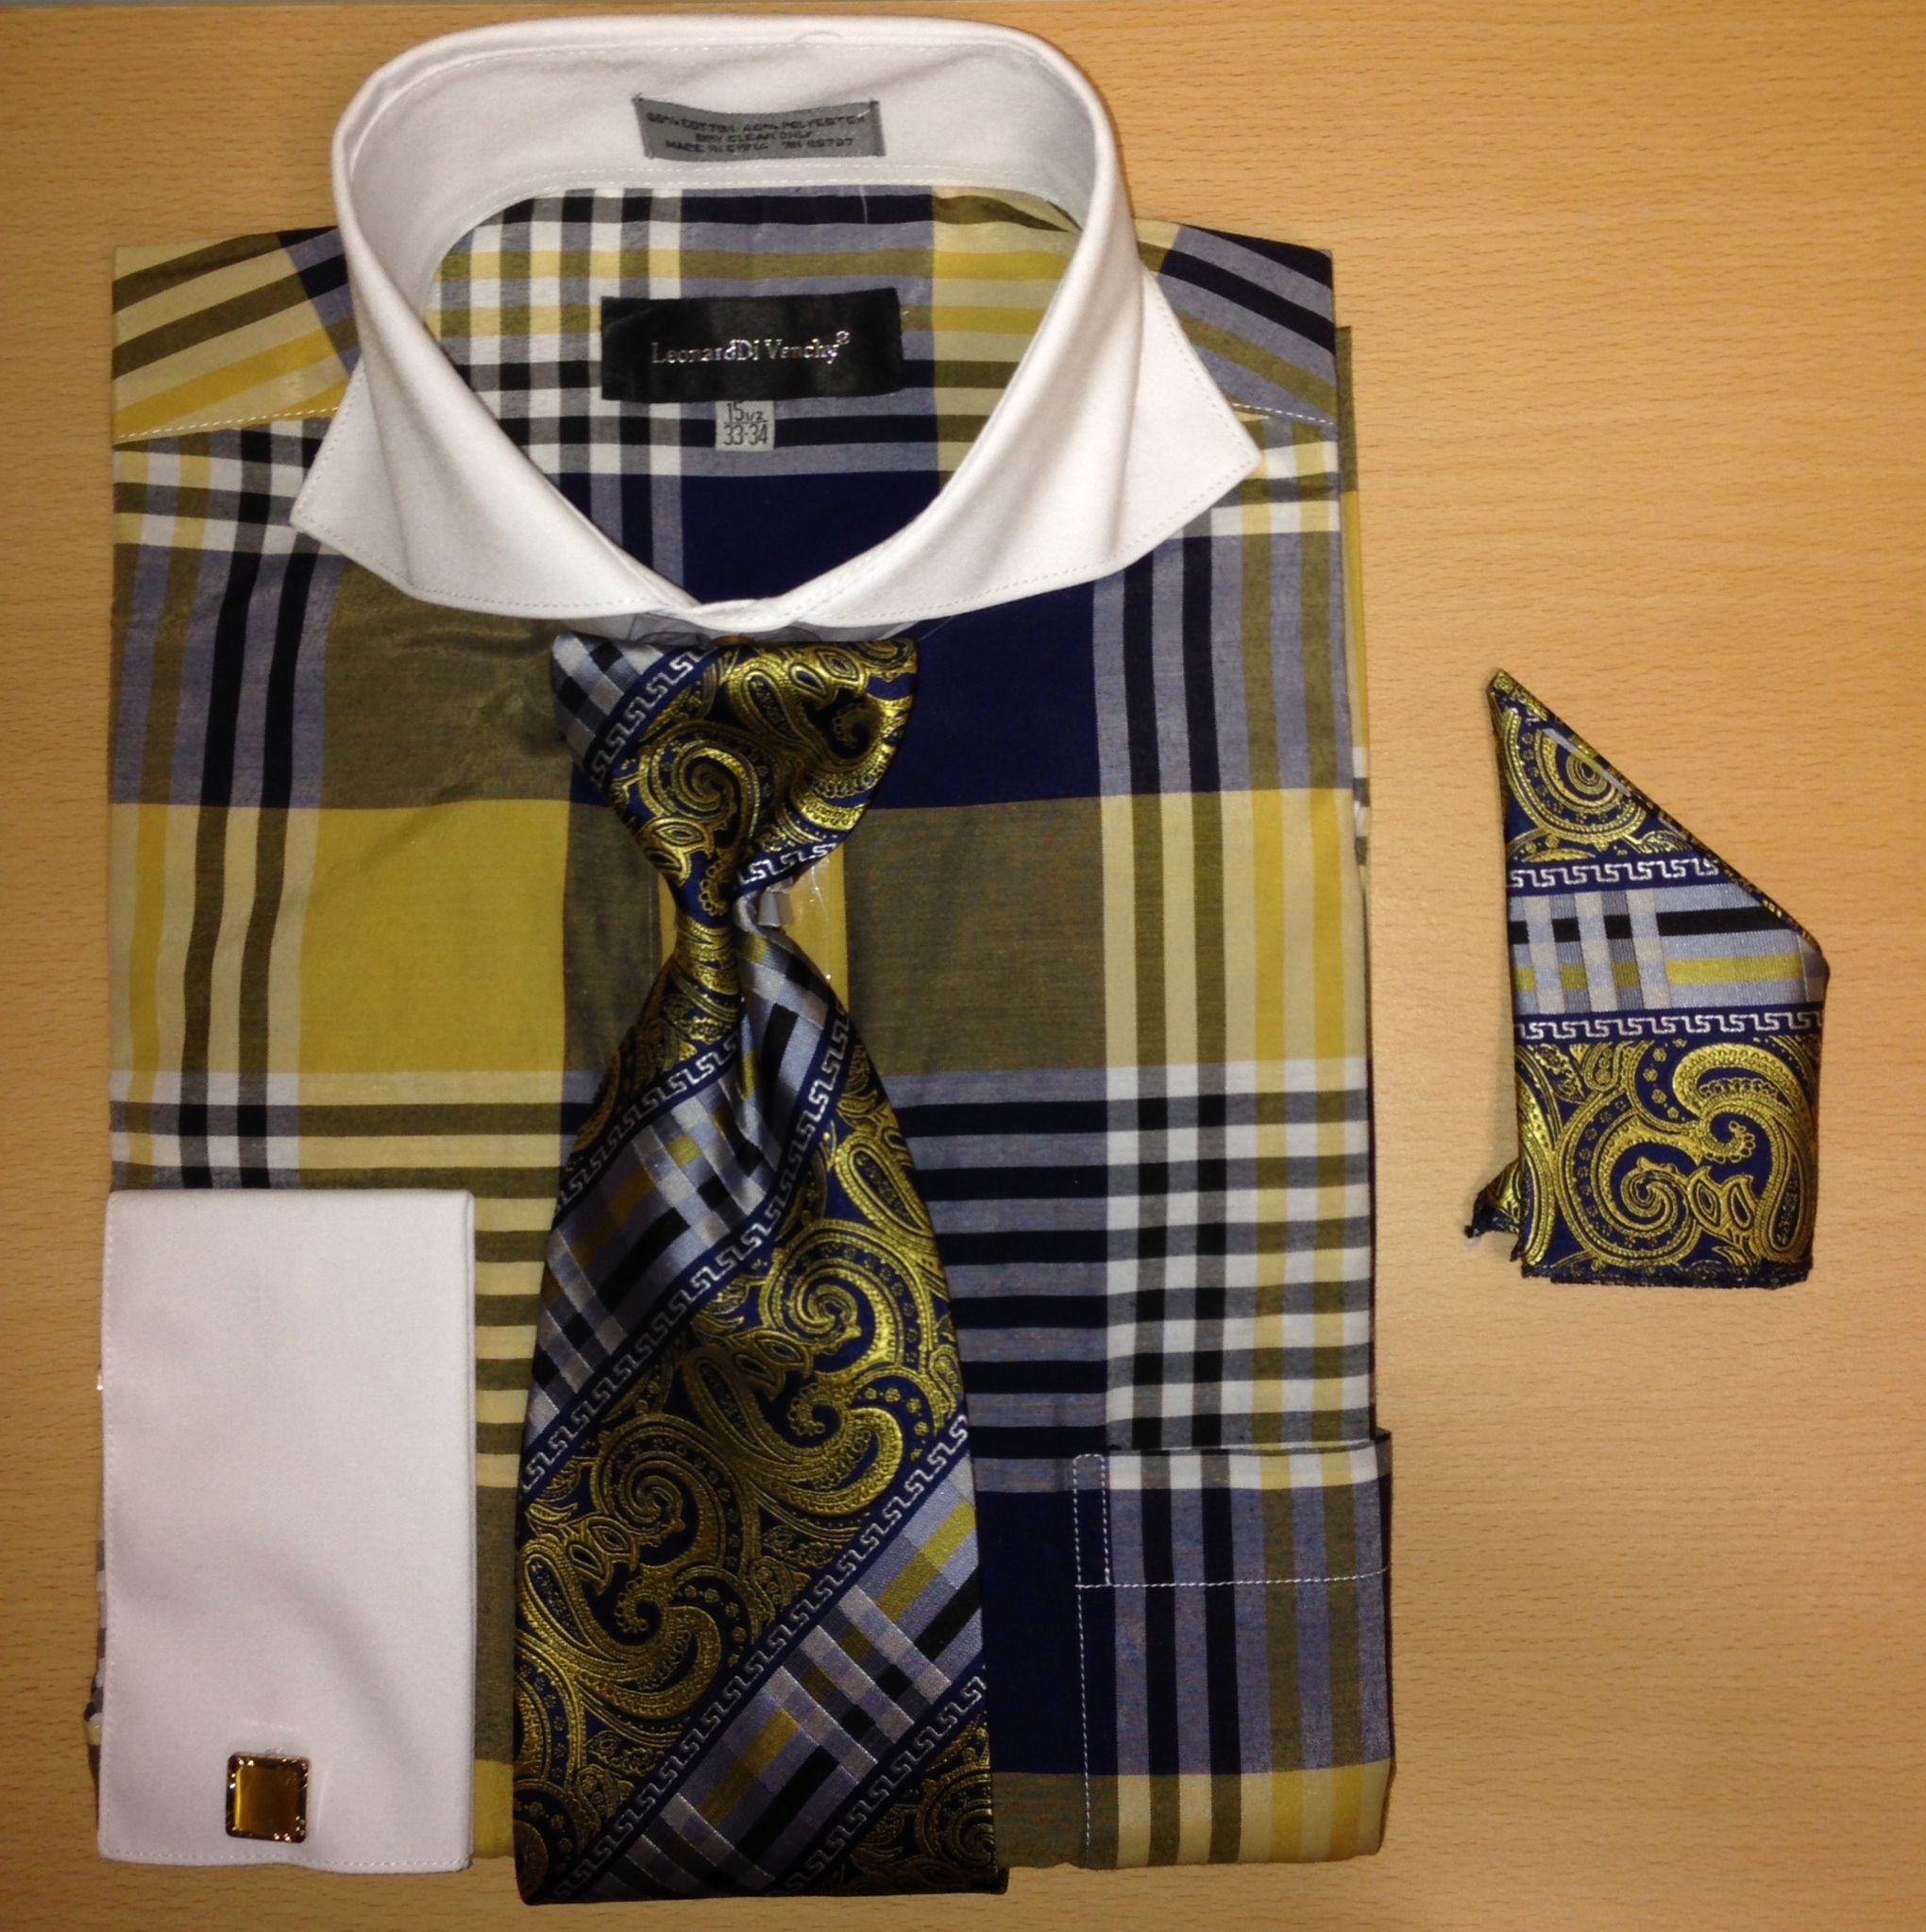 Men's Fashion Large Plaid Check Pattern Cufflink Dress Shirt Set - Navy and Gold